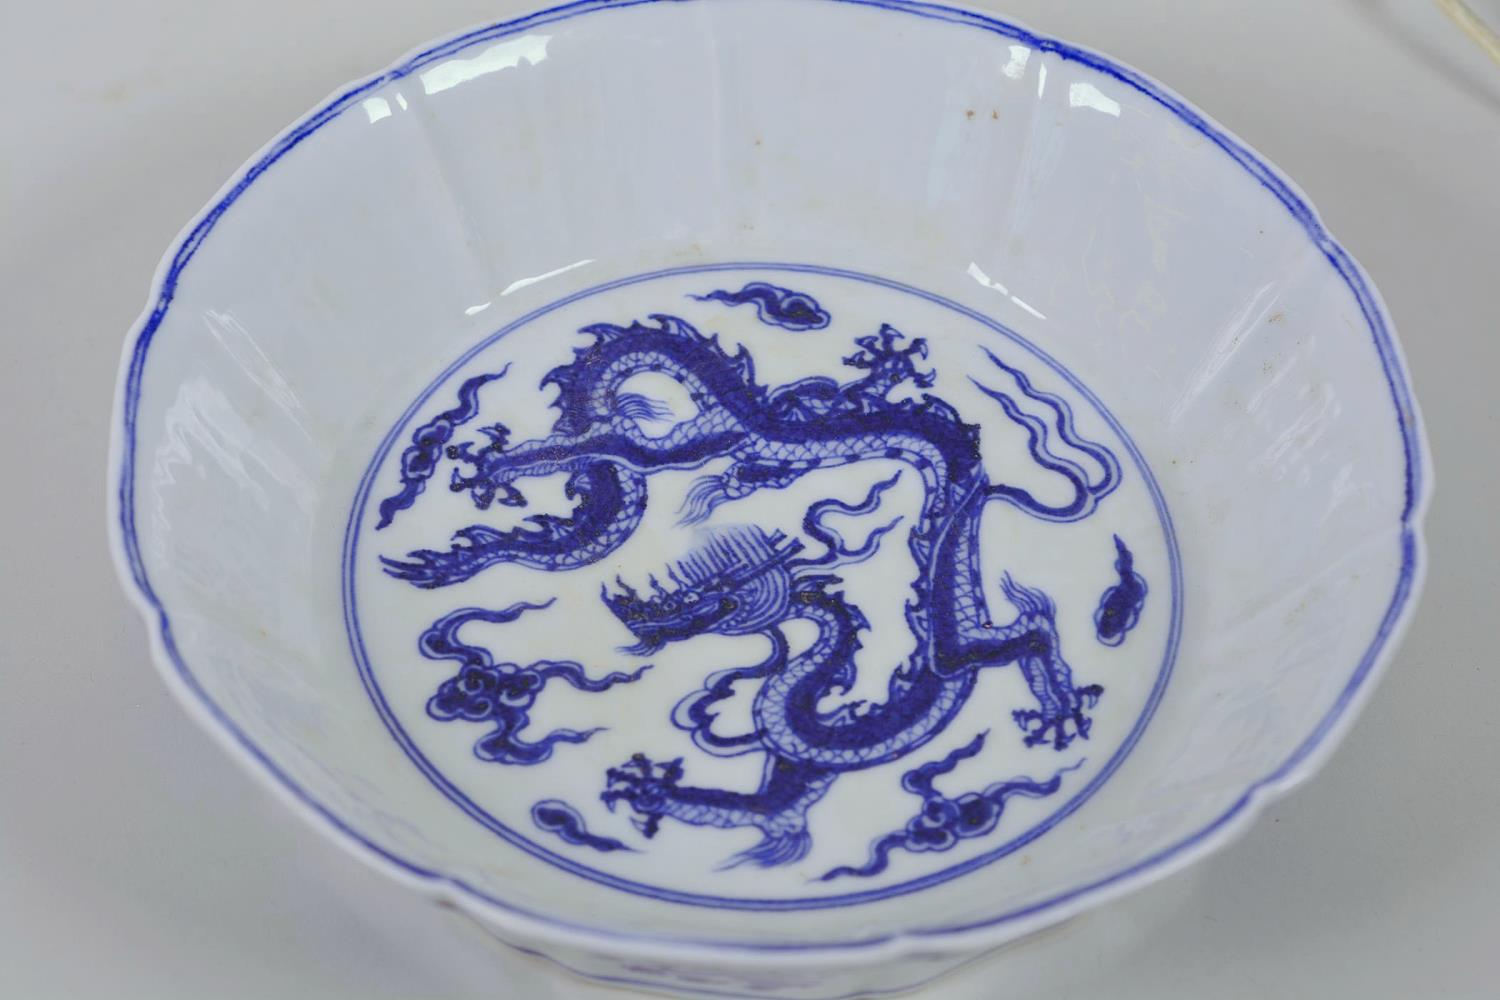 Lot 25 - A Chinese Ming style blue and white porcelain dish with lobed sides and dragon decoration, 6